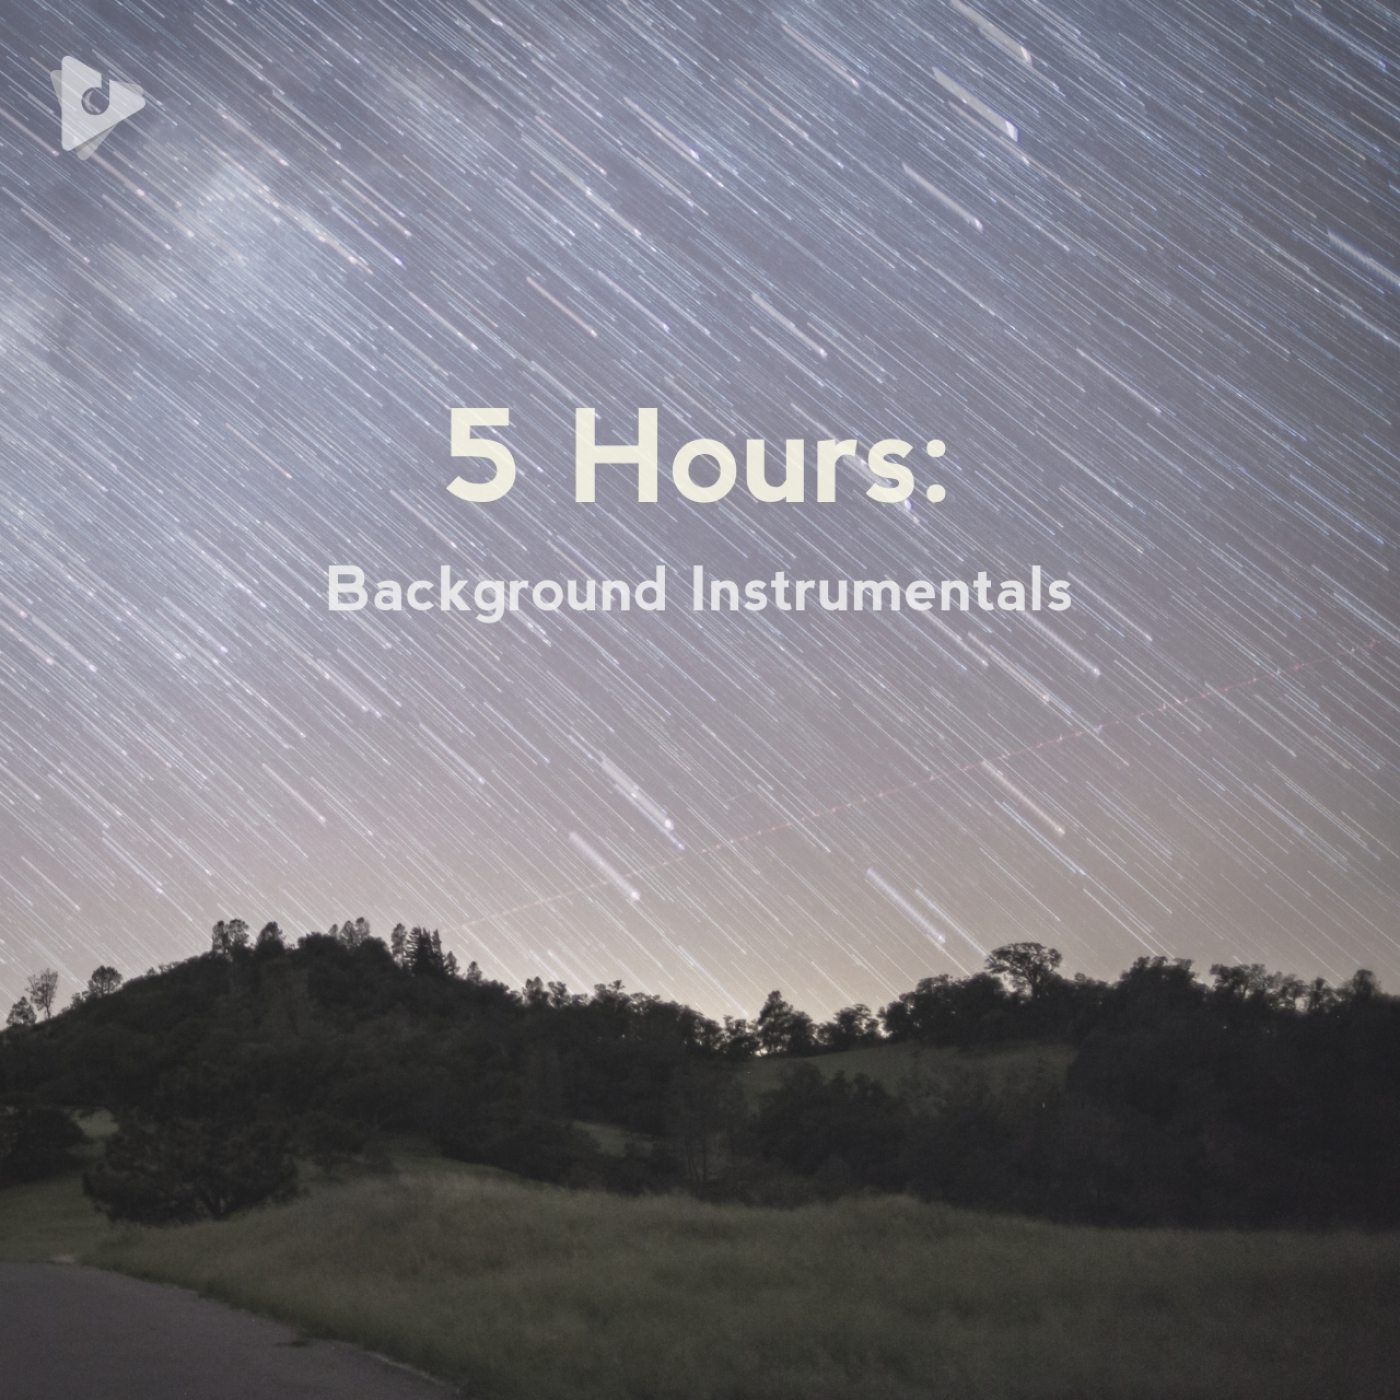 5 Hours: Background Instrumentals